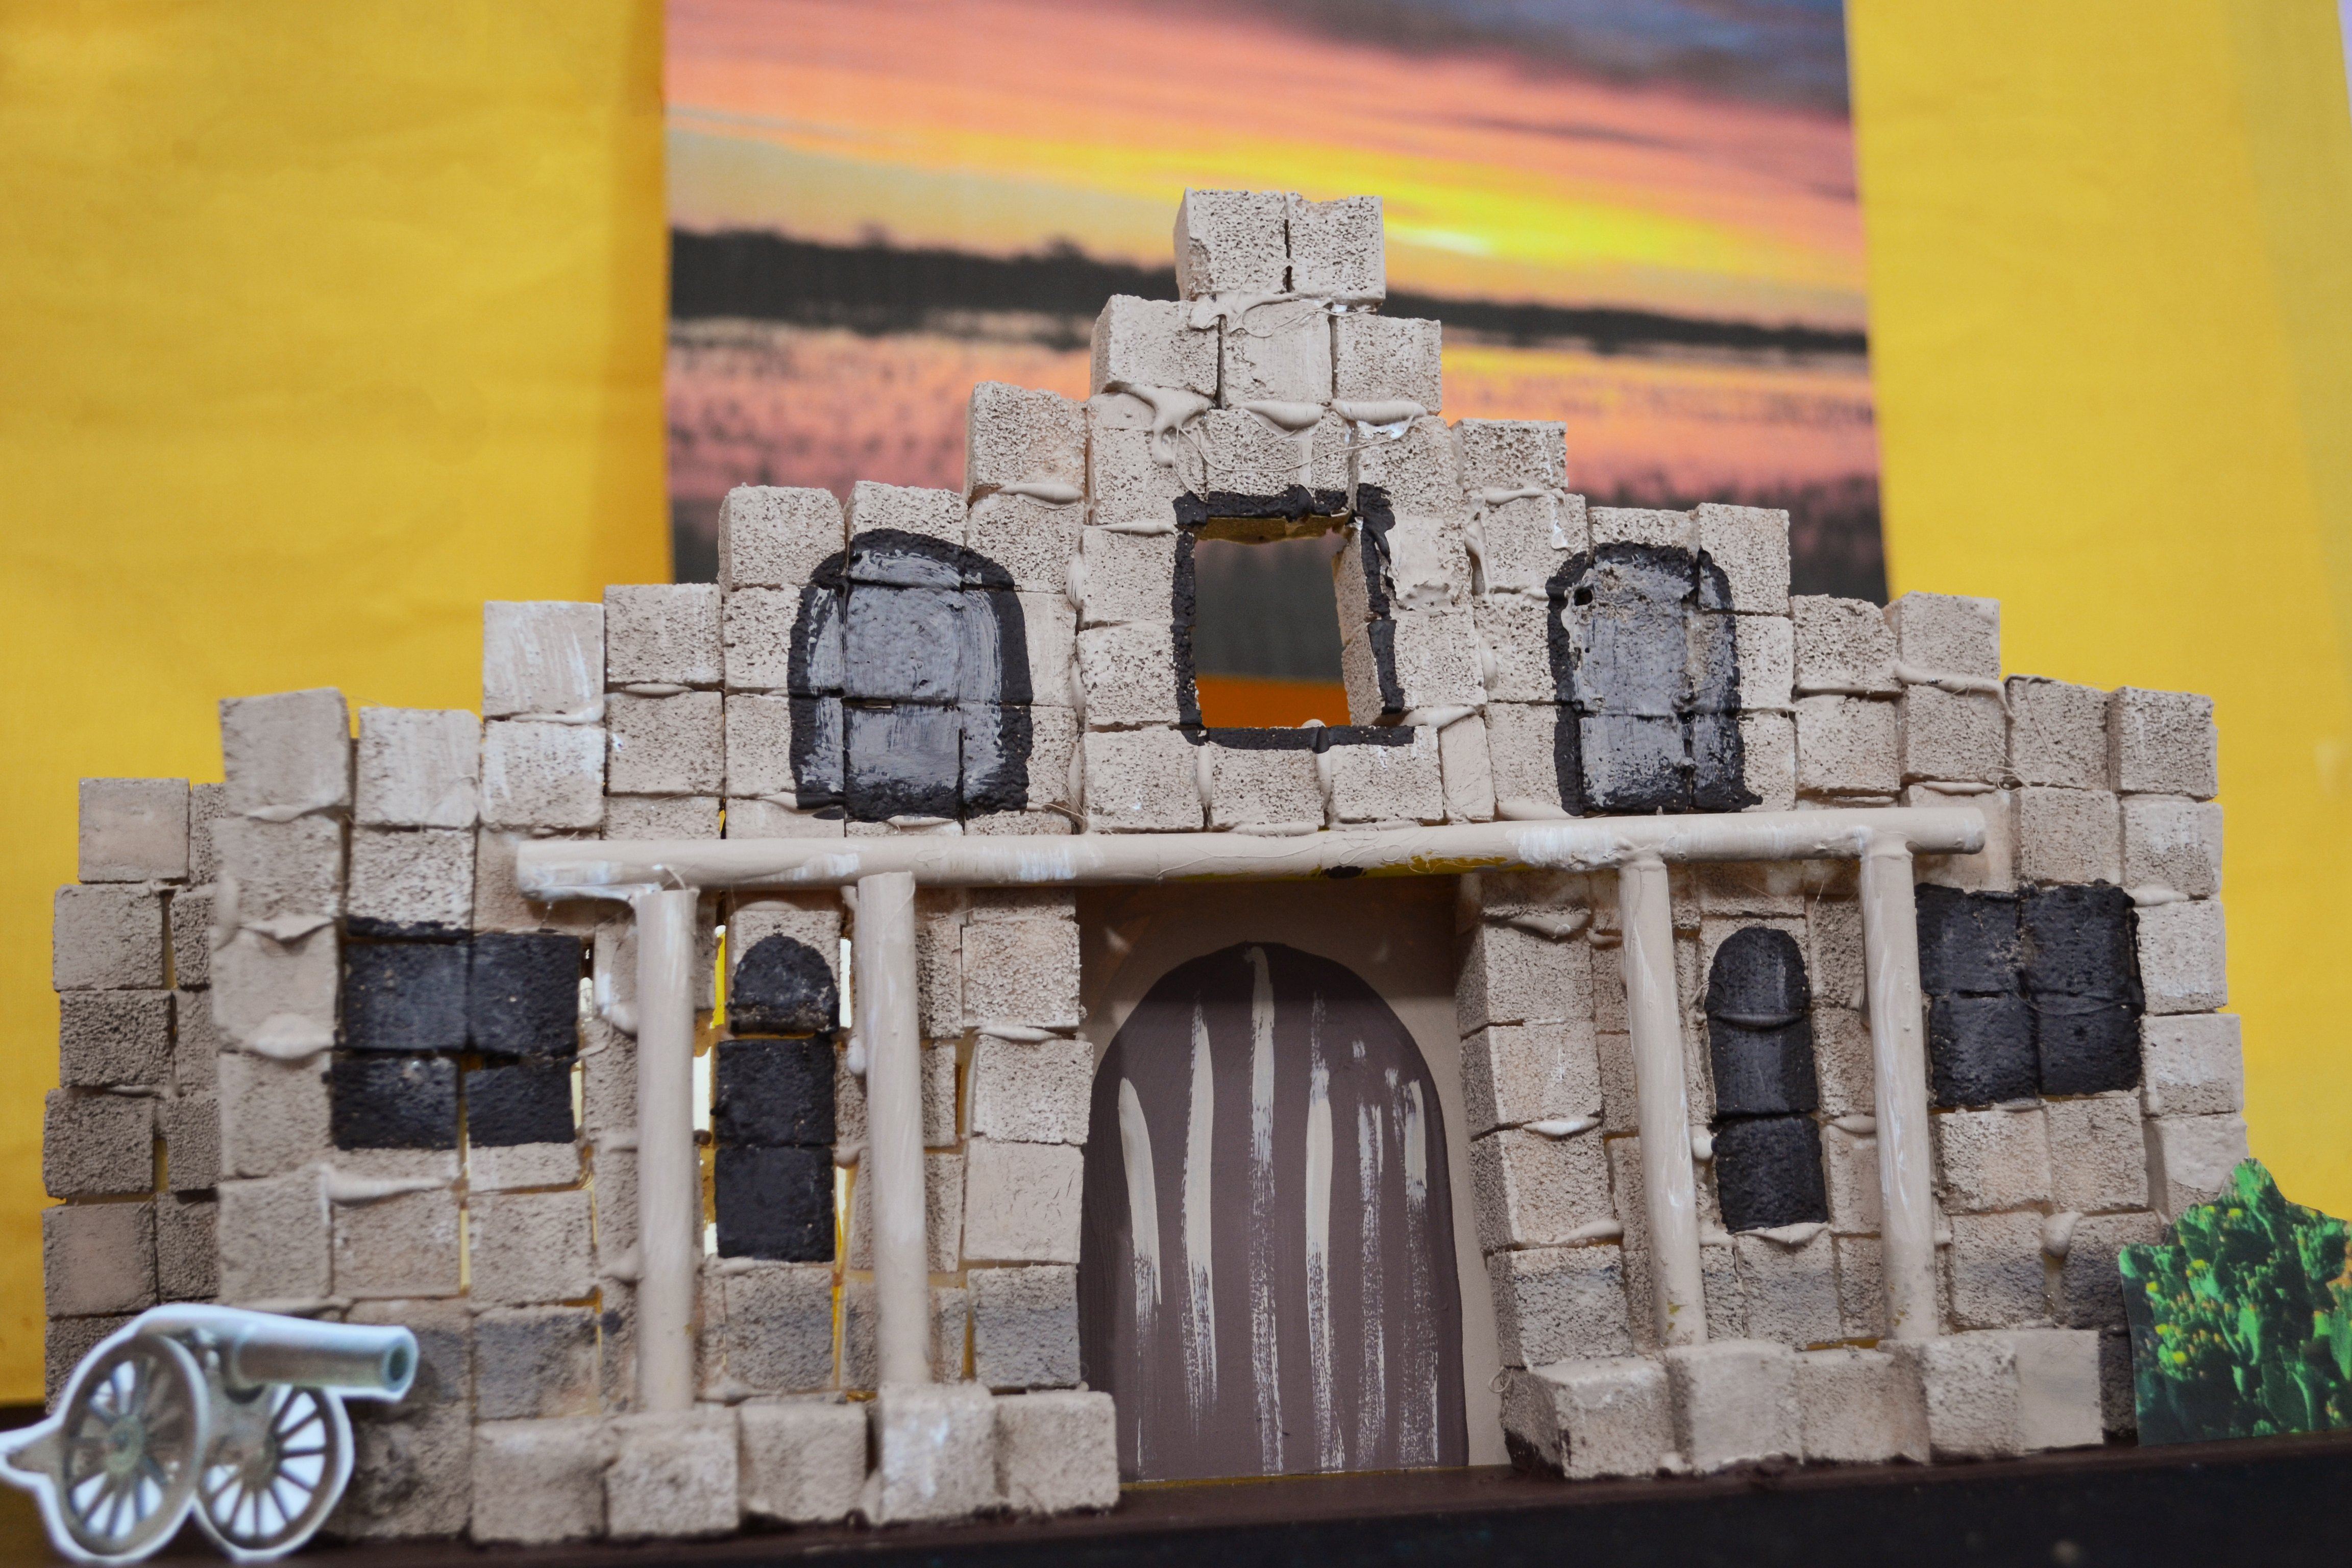 How To Build The Alamo For A School Project With Pictures